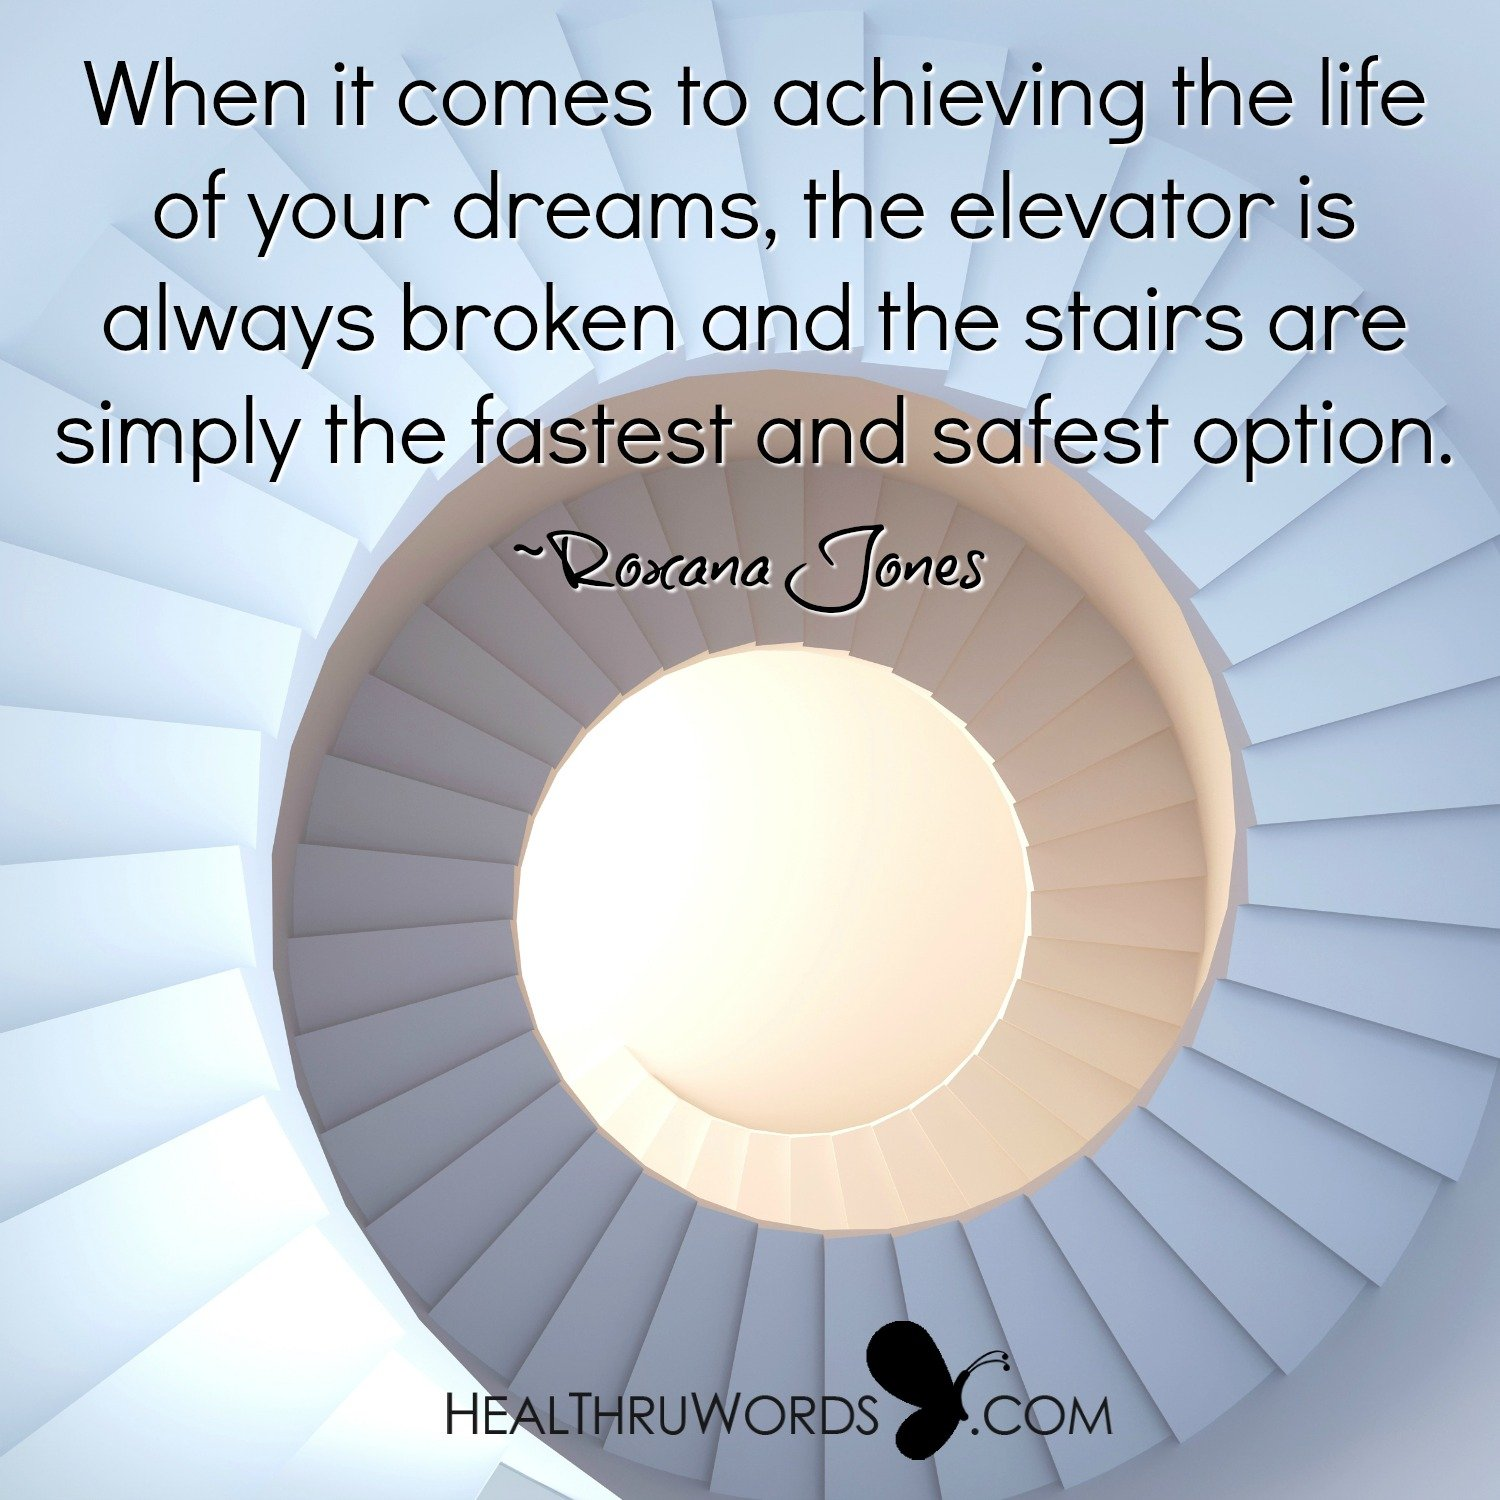 Inspirational Image: Stairway to Success